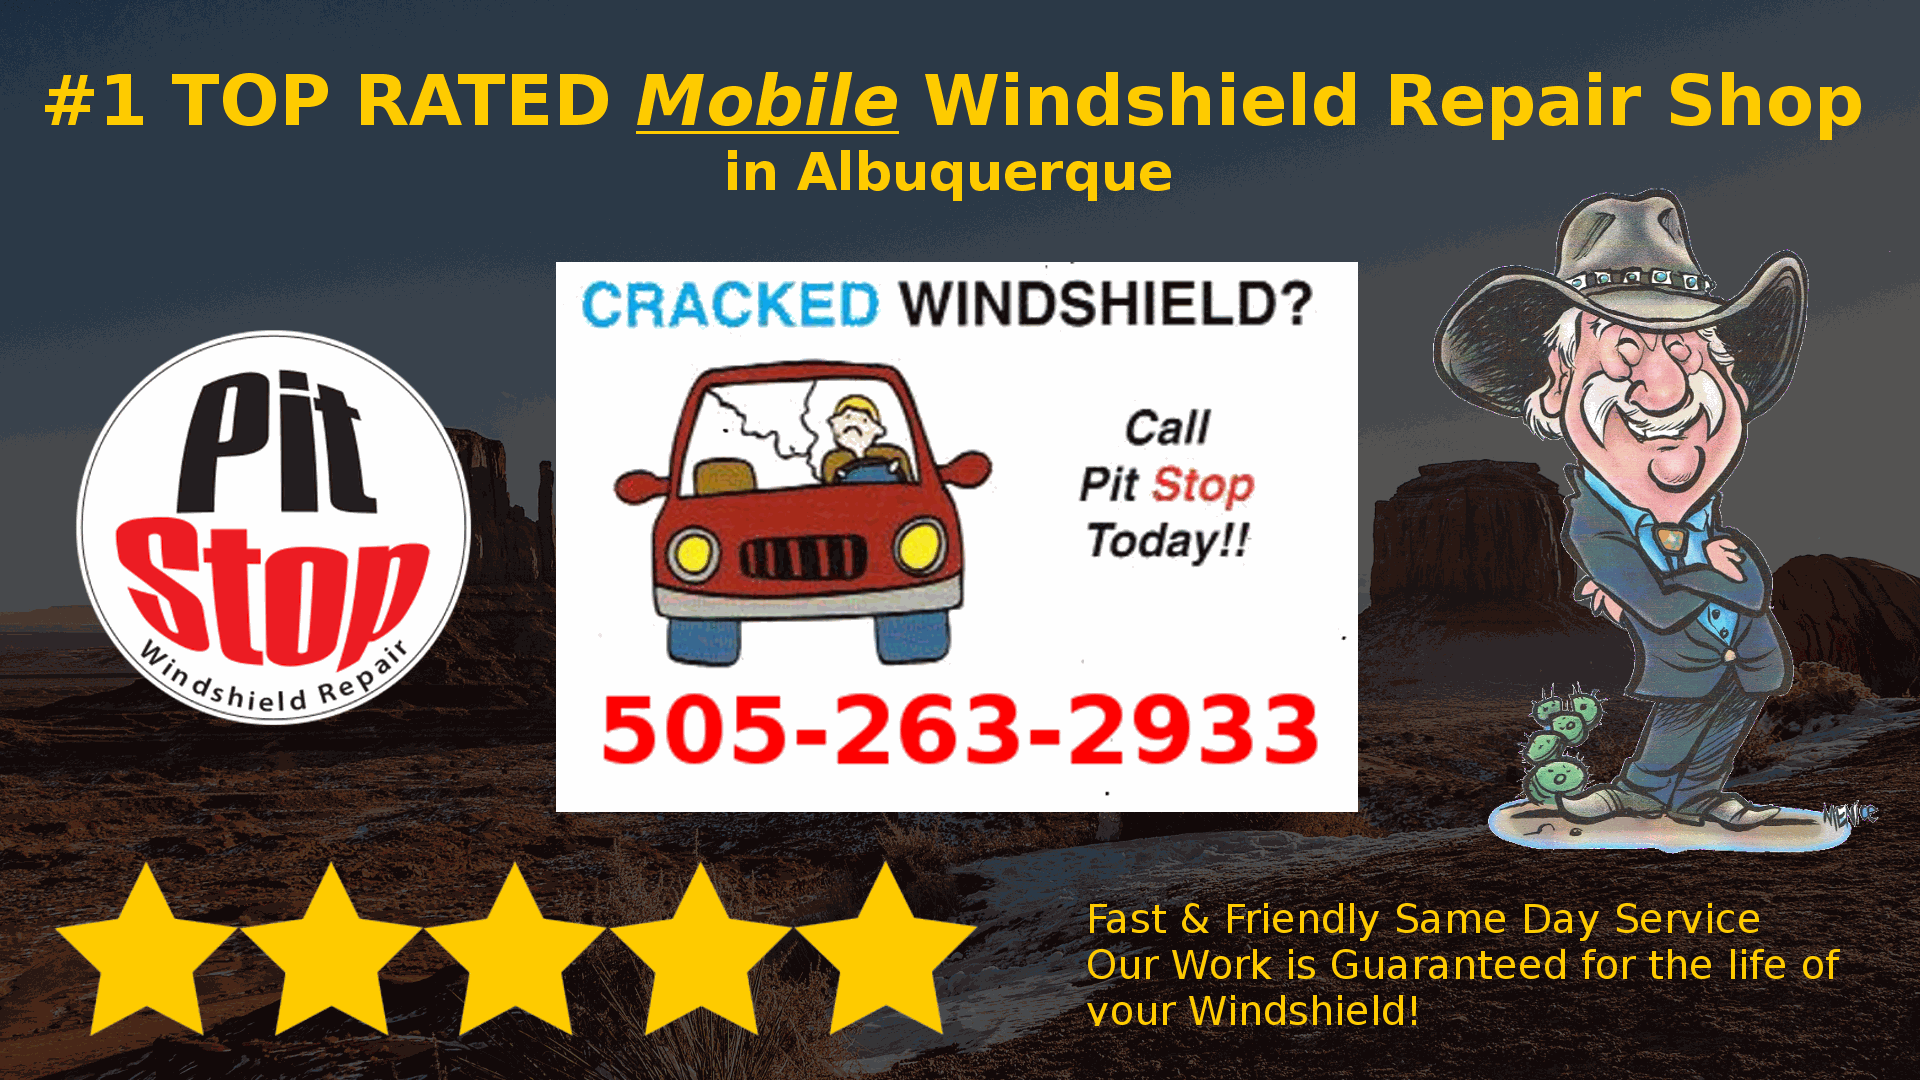 Windshield Repair in Albuquerque